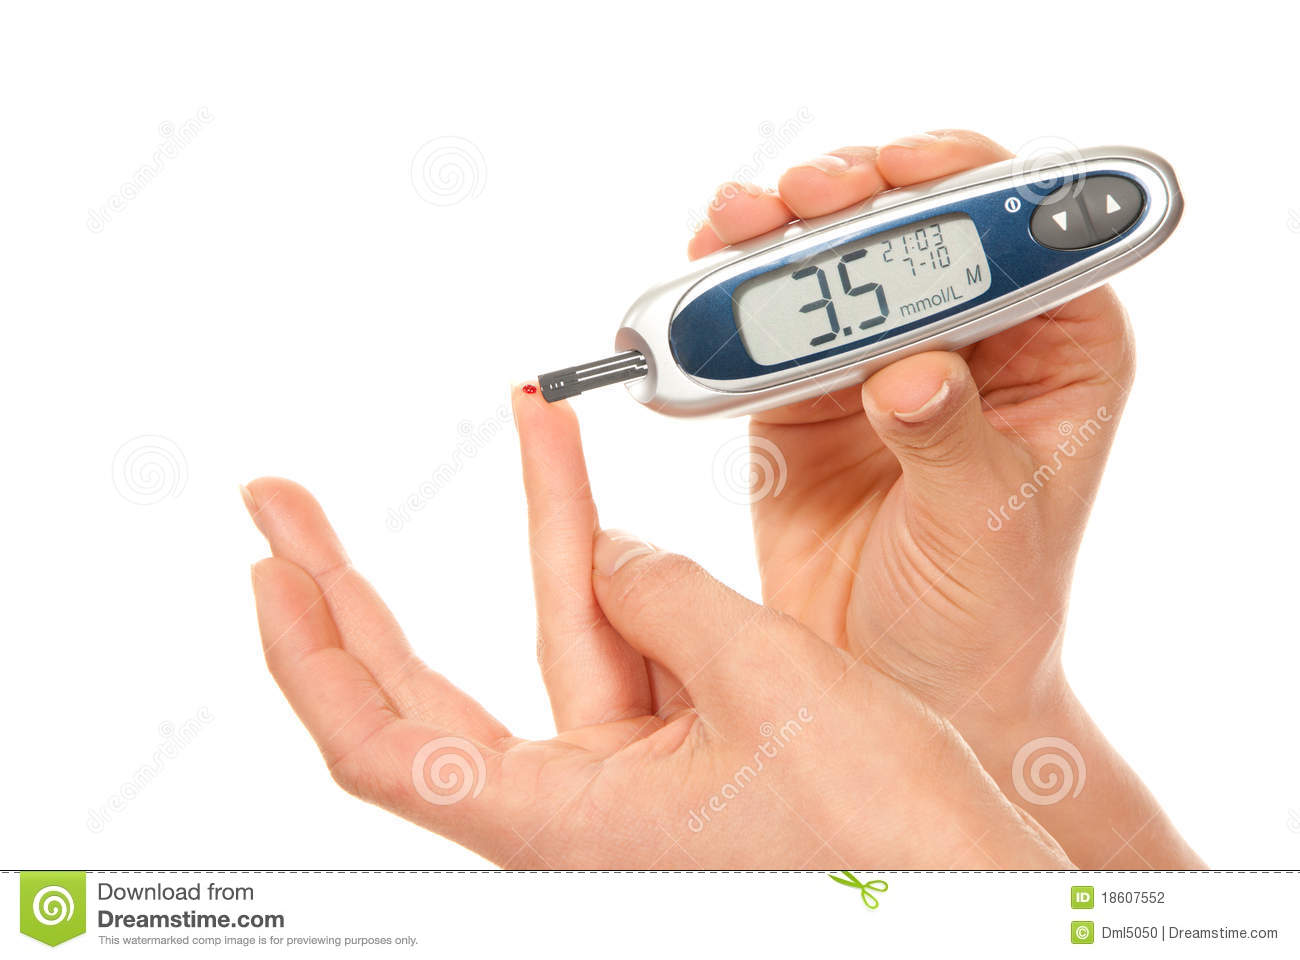 How To Lower Blood Sugar Level